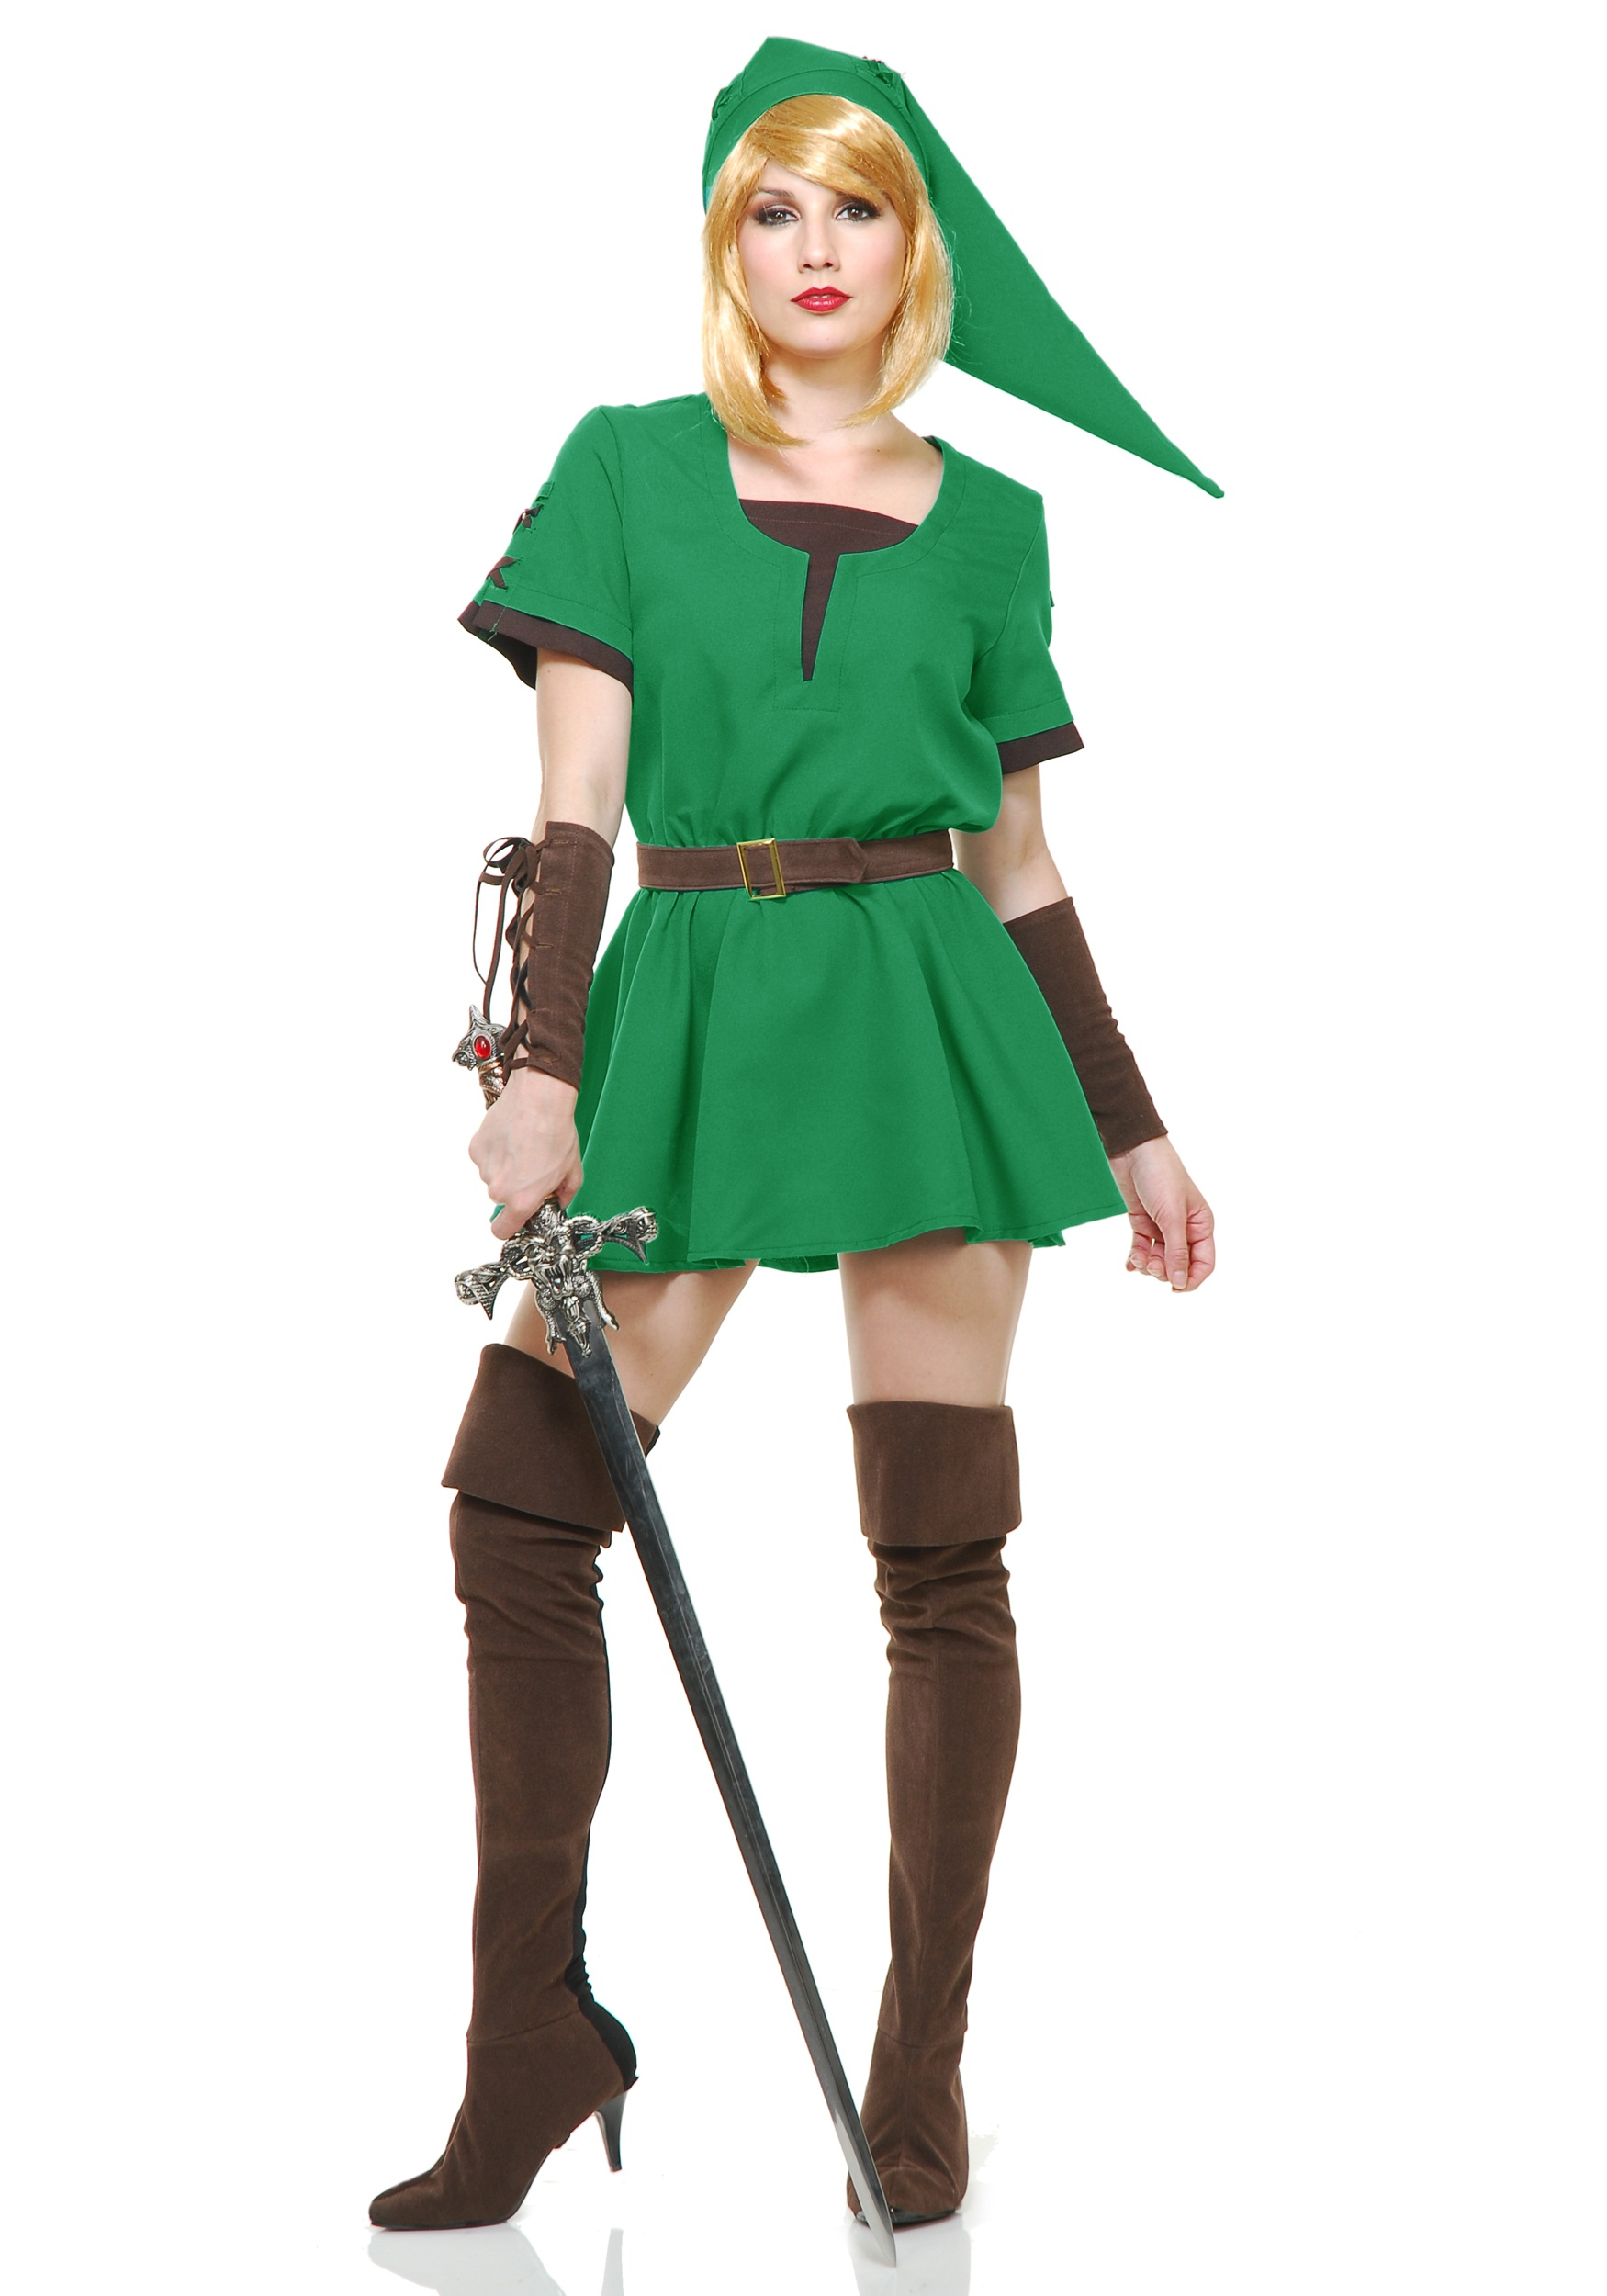 Elf Warrior Princess Costume  sc 1 st  Halloween Costumes & Elf Warrior Princess Costume - Halloween Costumes